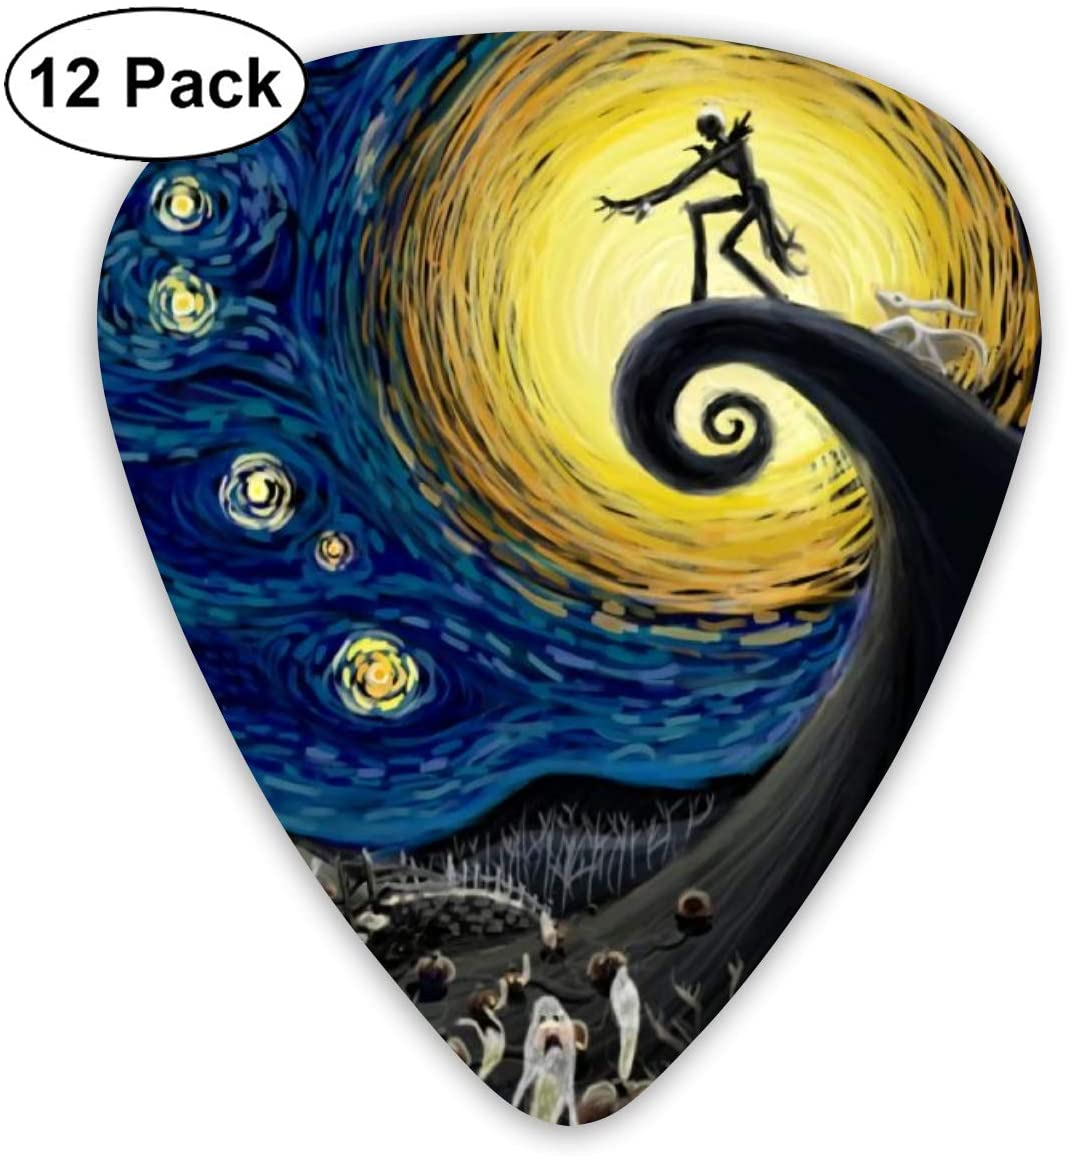 Guitar Picks nightmare before christmas Guitar Plectrums for Electric Guitar Acoustic Guitar Mandolin and Bass(12 Pack Includes Thin Medium Heavy Gauges)